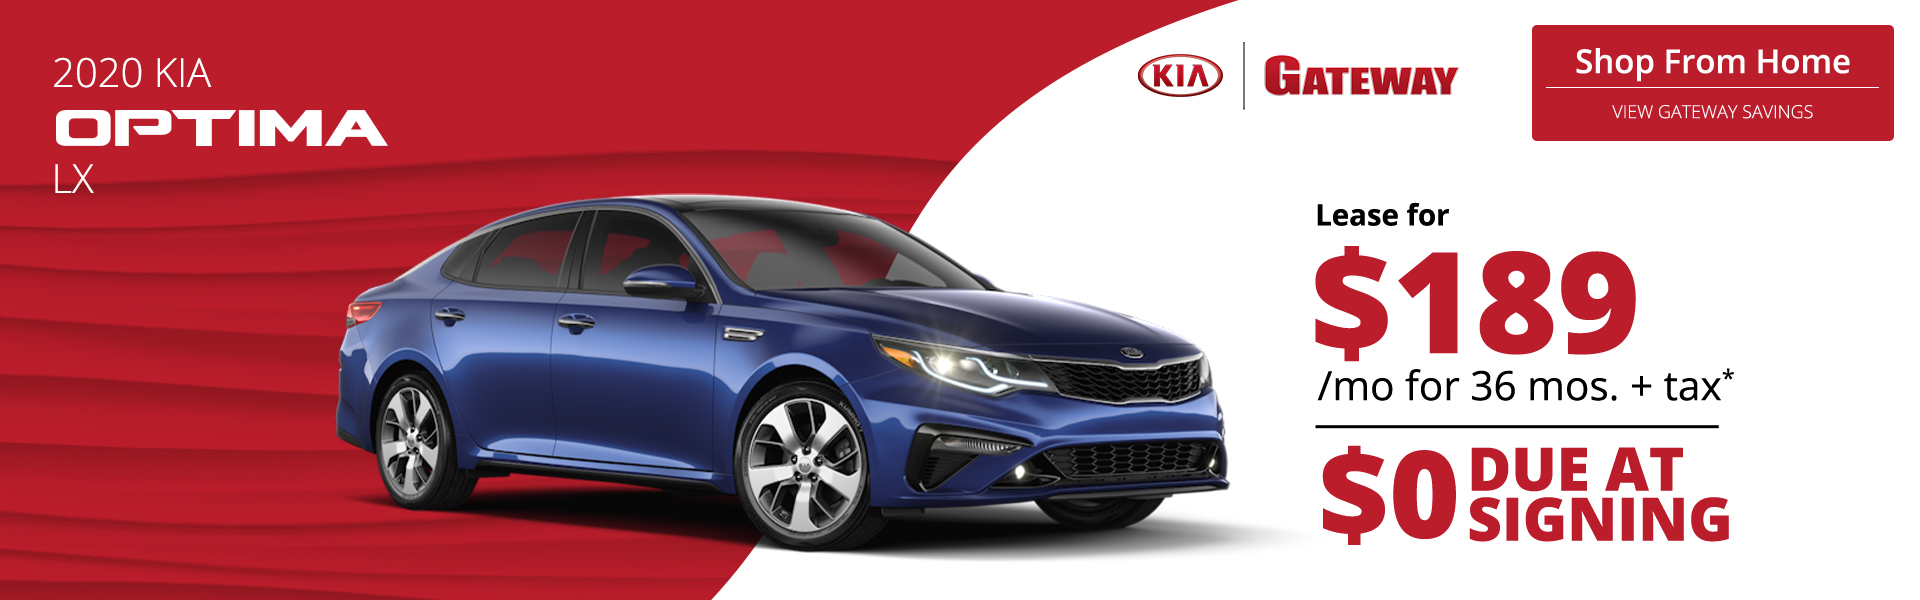 Gateway - 2020 Kia Optima - HP